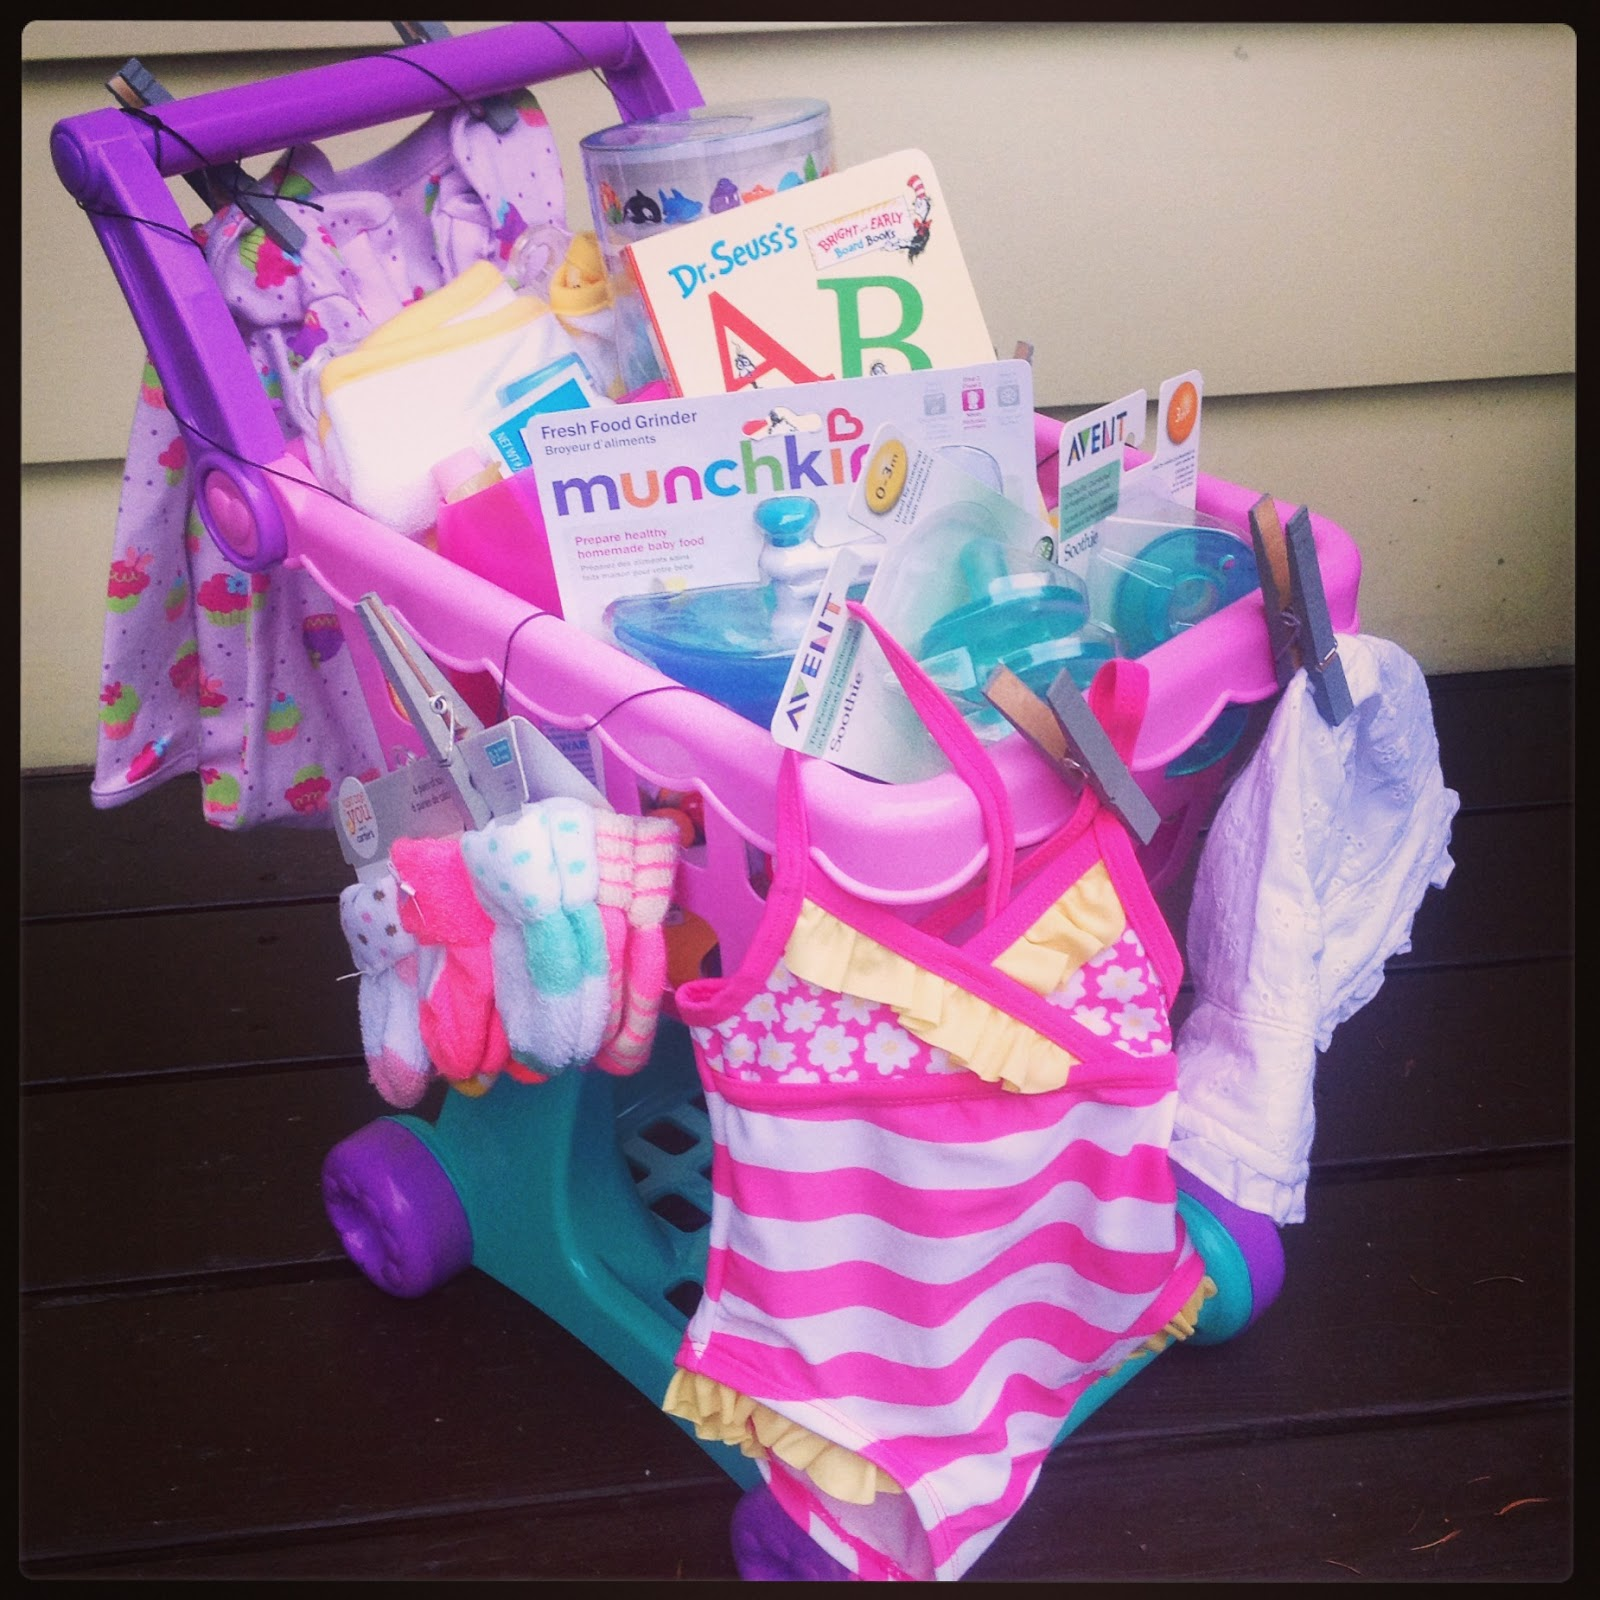 Shopping Easter Basket - Filled with sippy cups and everything your little one will need this spring and summer.